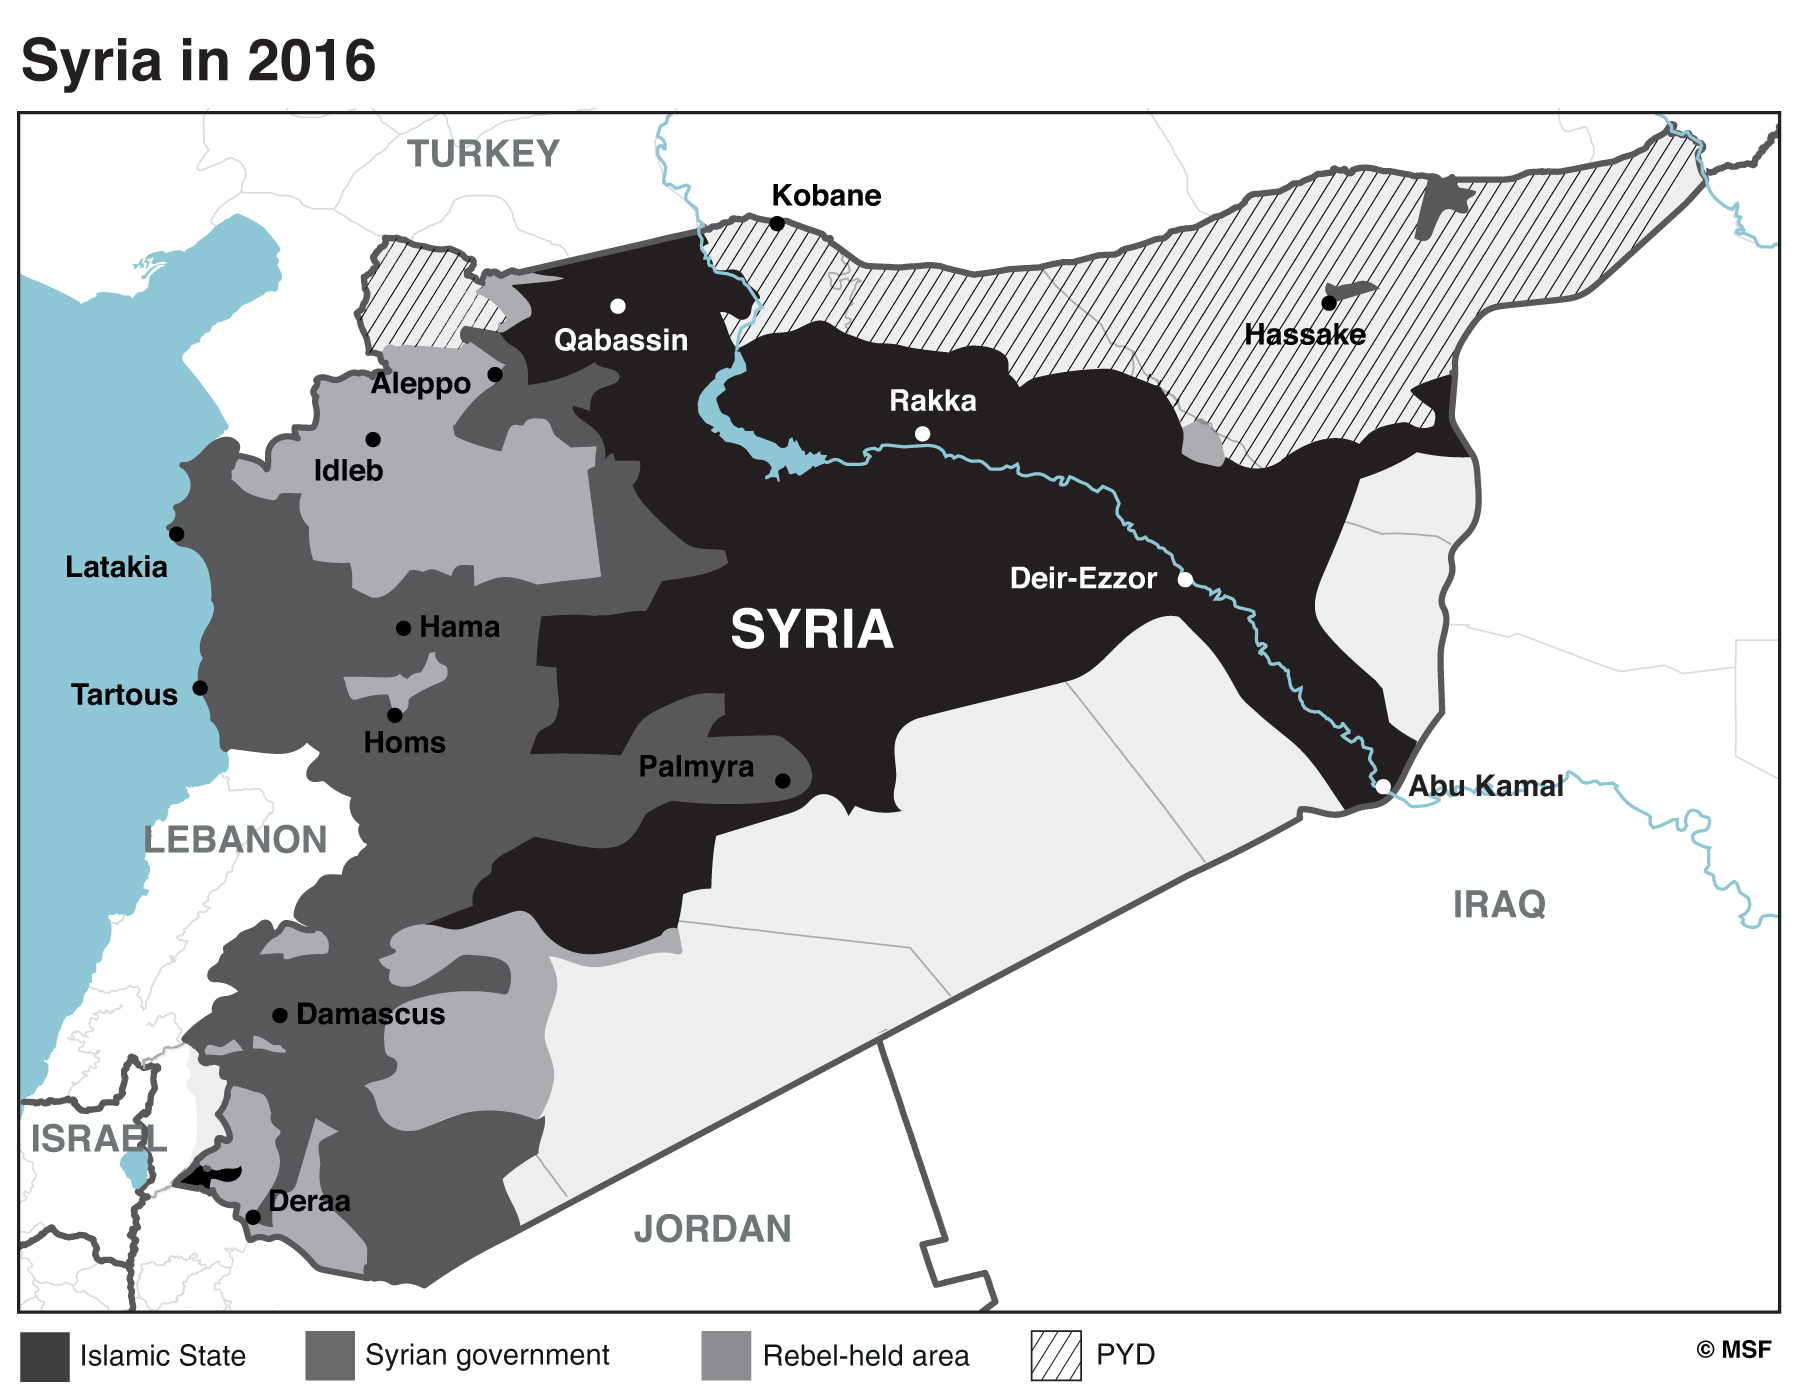 Figure 1 : Syria in 2016.